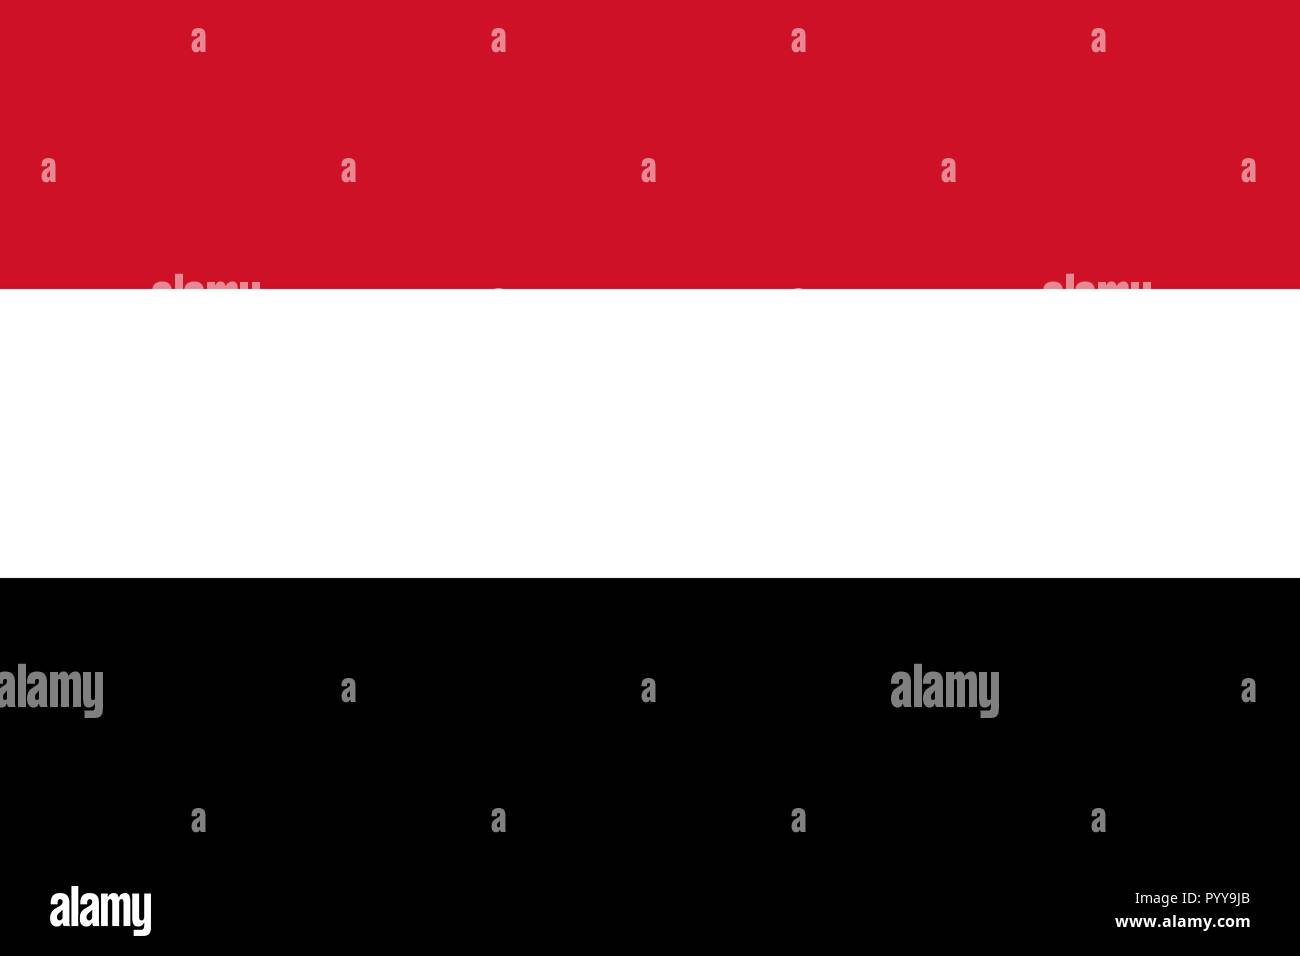 Simple flag of Yemen. Correct size, proportion, colors. - Stock Vector